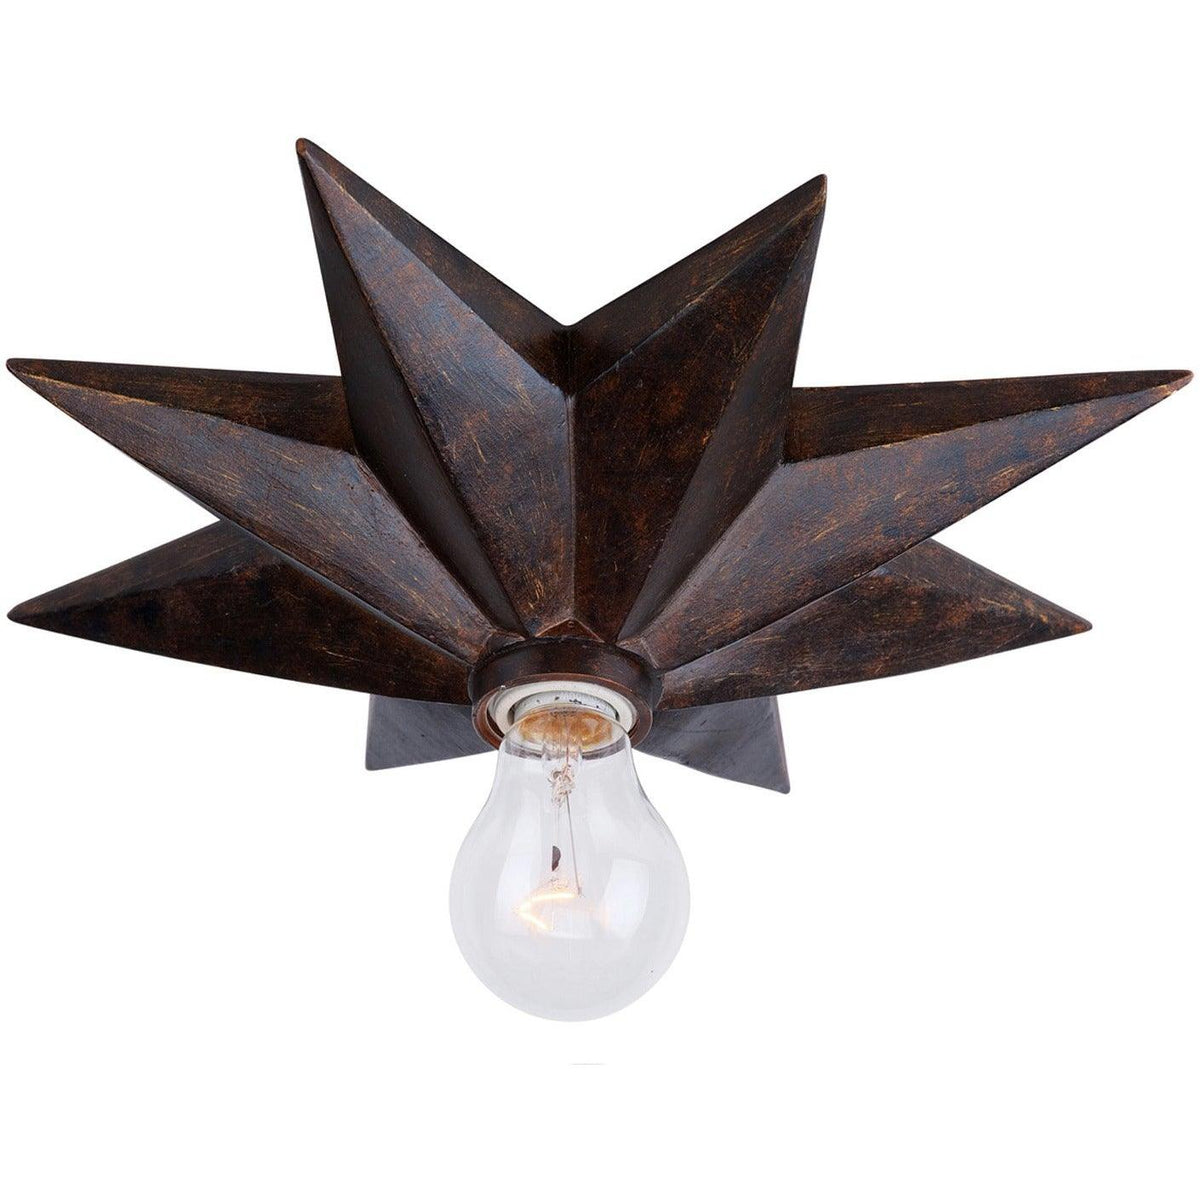 Crystorama - 9230-EB - One Light Wall Mount - Astro - English Bronze